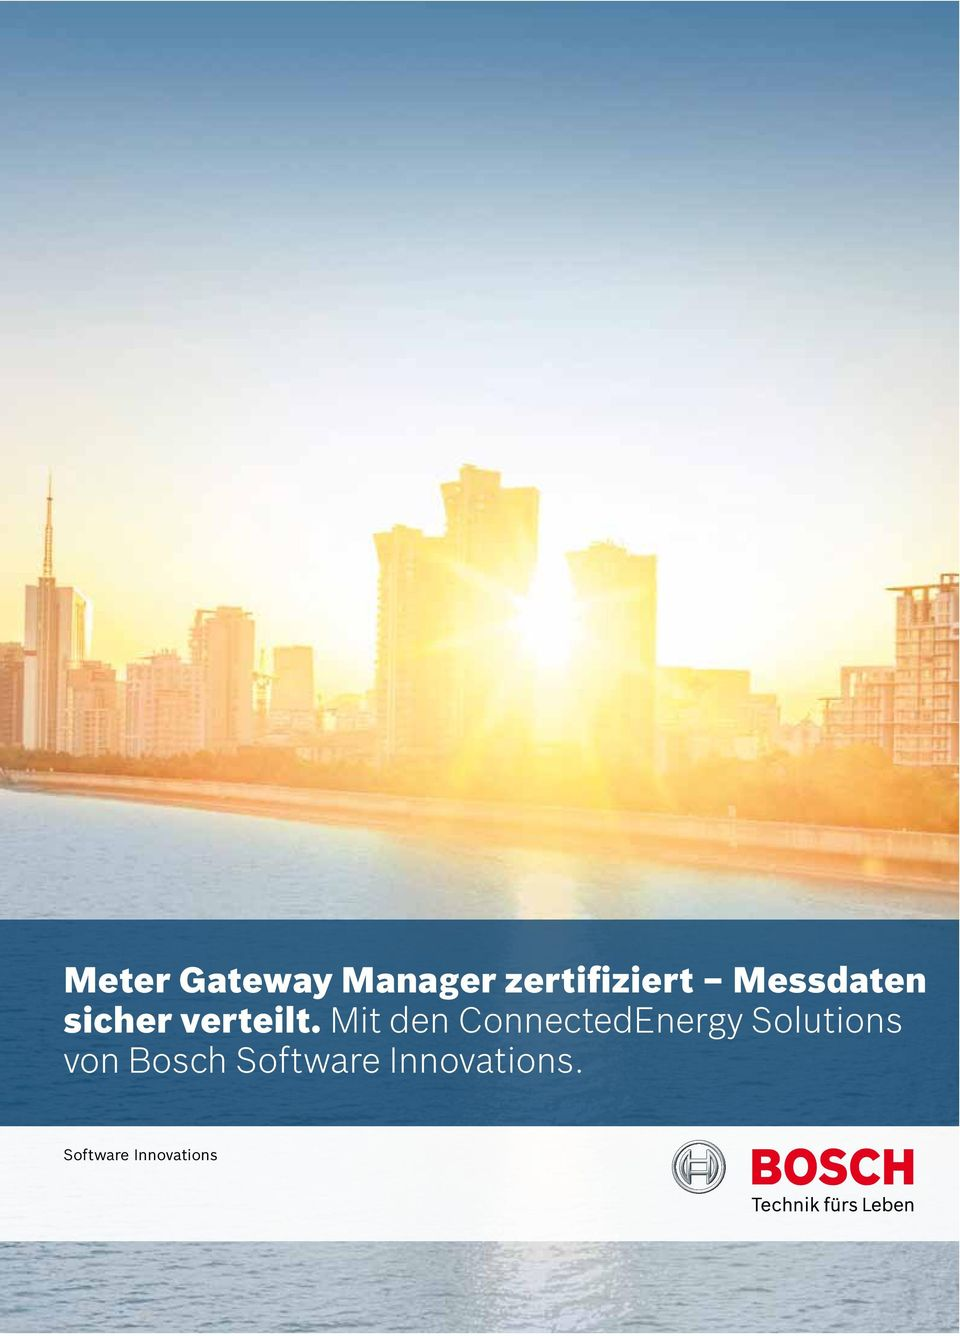 Mit den ConnectedEnergy Solutions